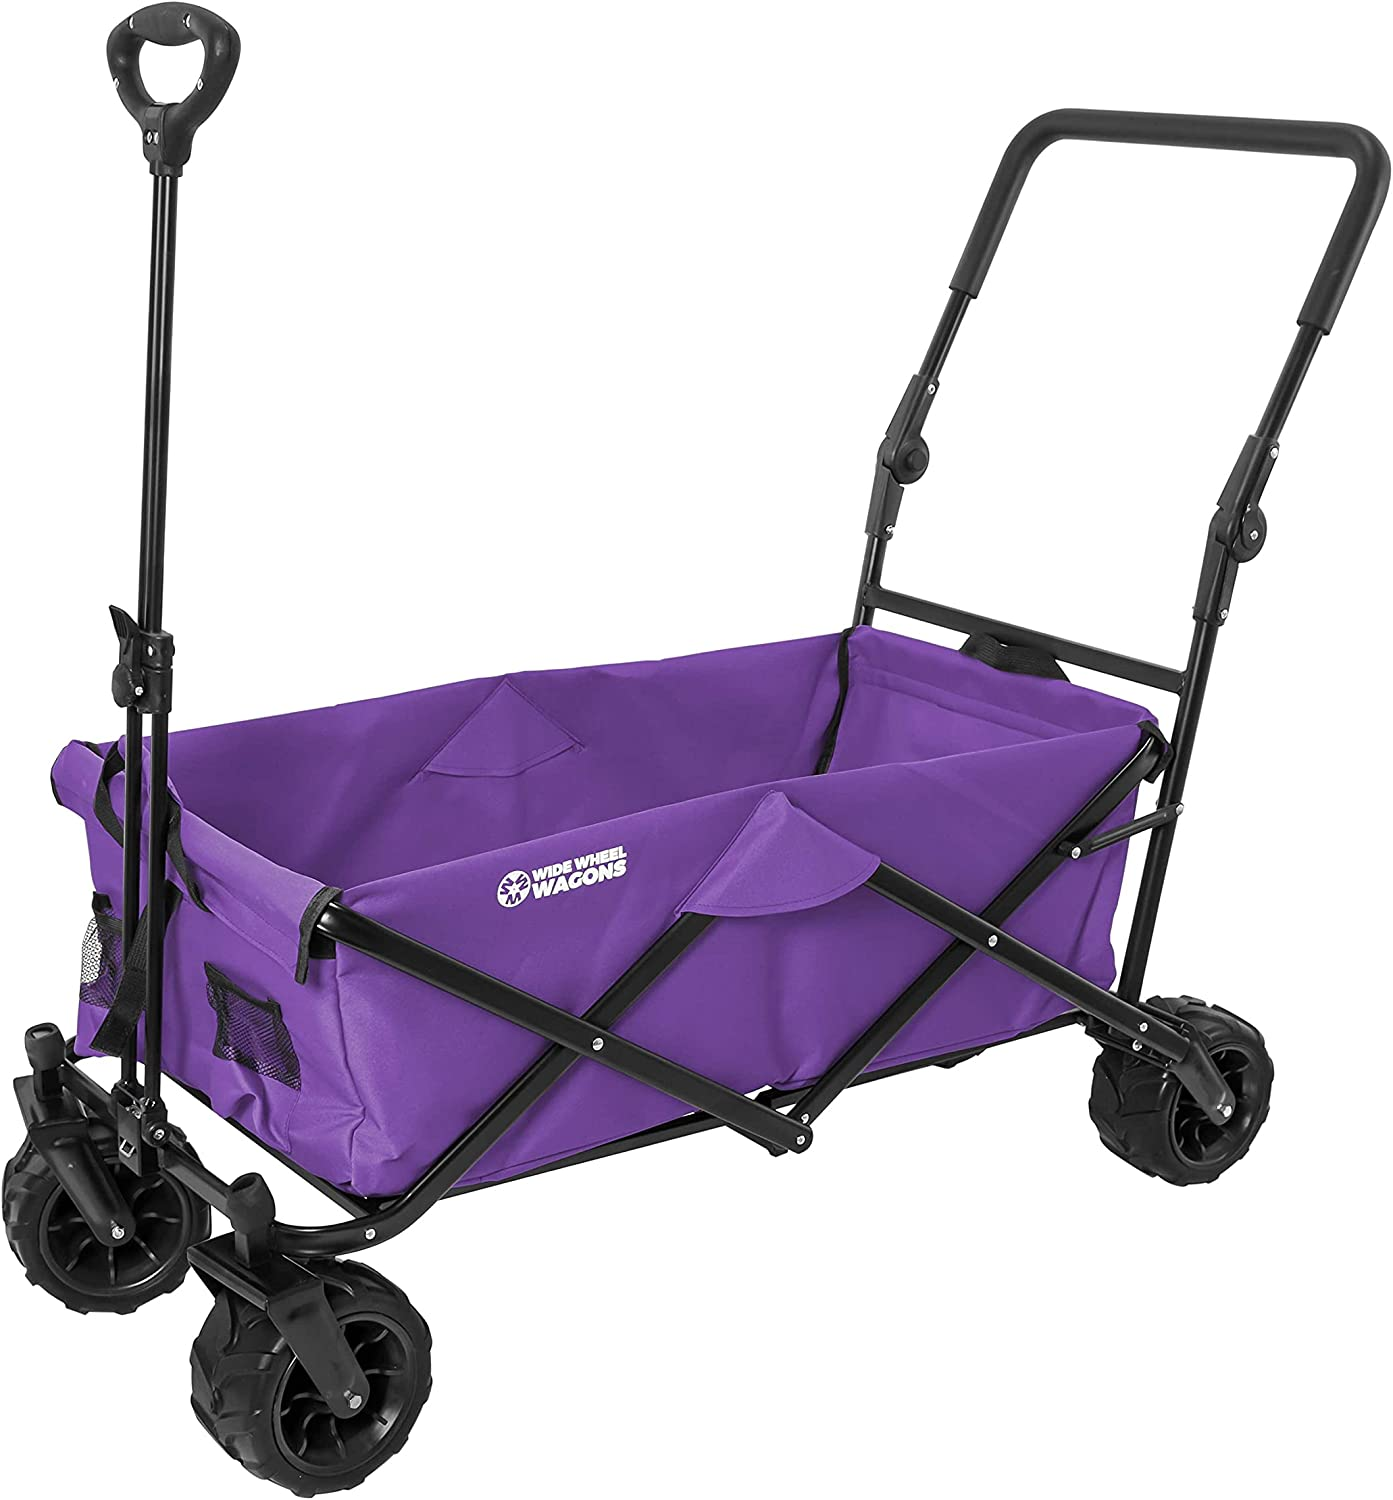 Purple Wide Wheel Wagon All-Terrain Folding Collapsible Utility Wagon with Push Bar - Portable Rolling Heavy Duty 150 Lbs Capacity Canvas Fabric Cart Buggy - Beach, Garden, Sporting Events, Park